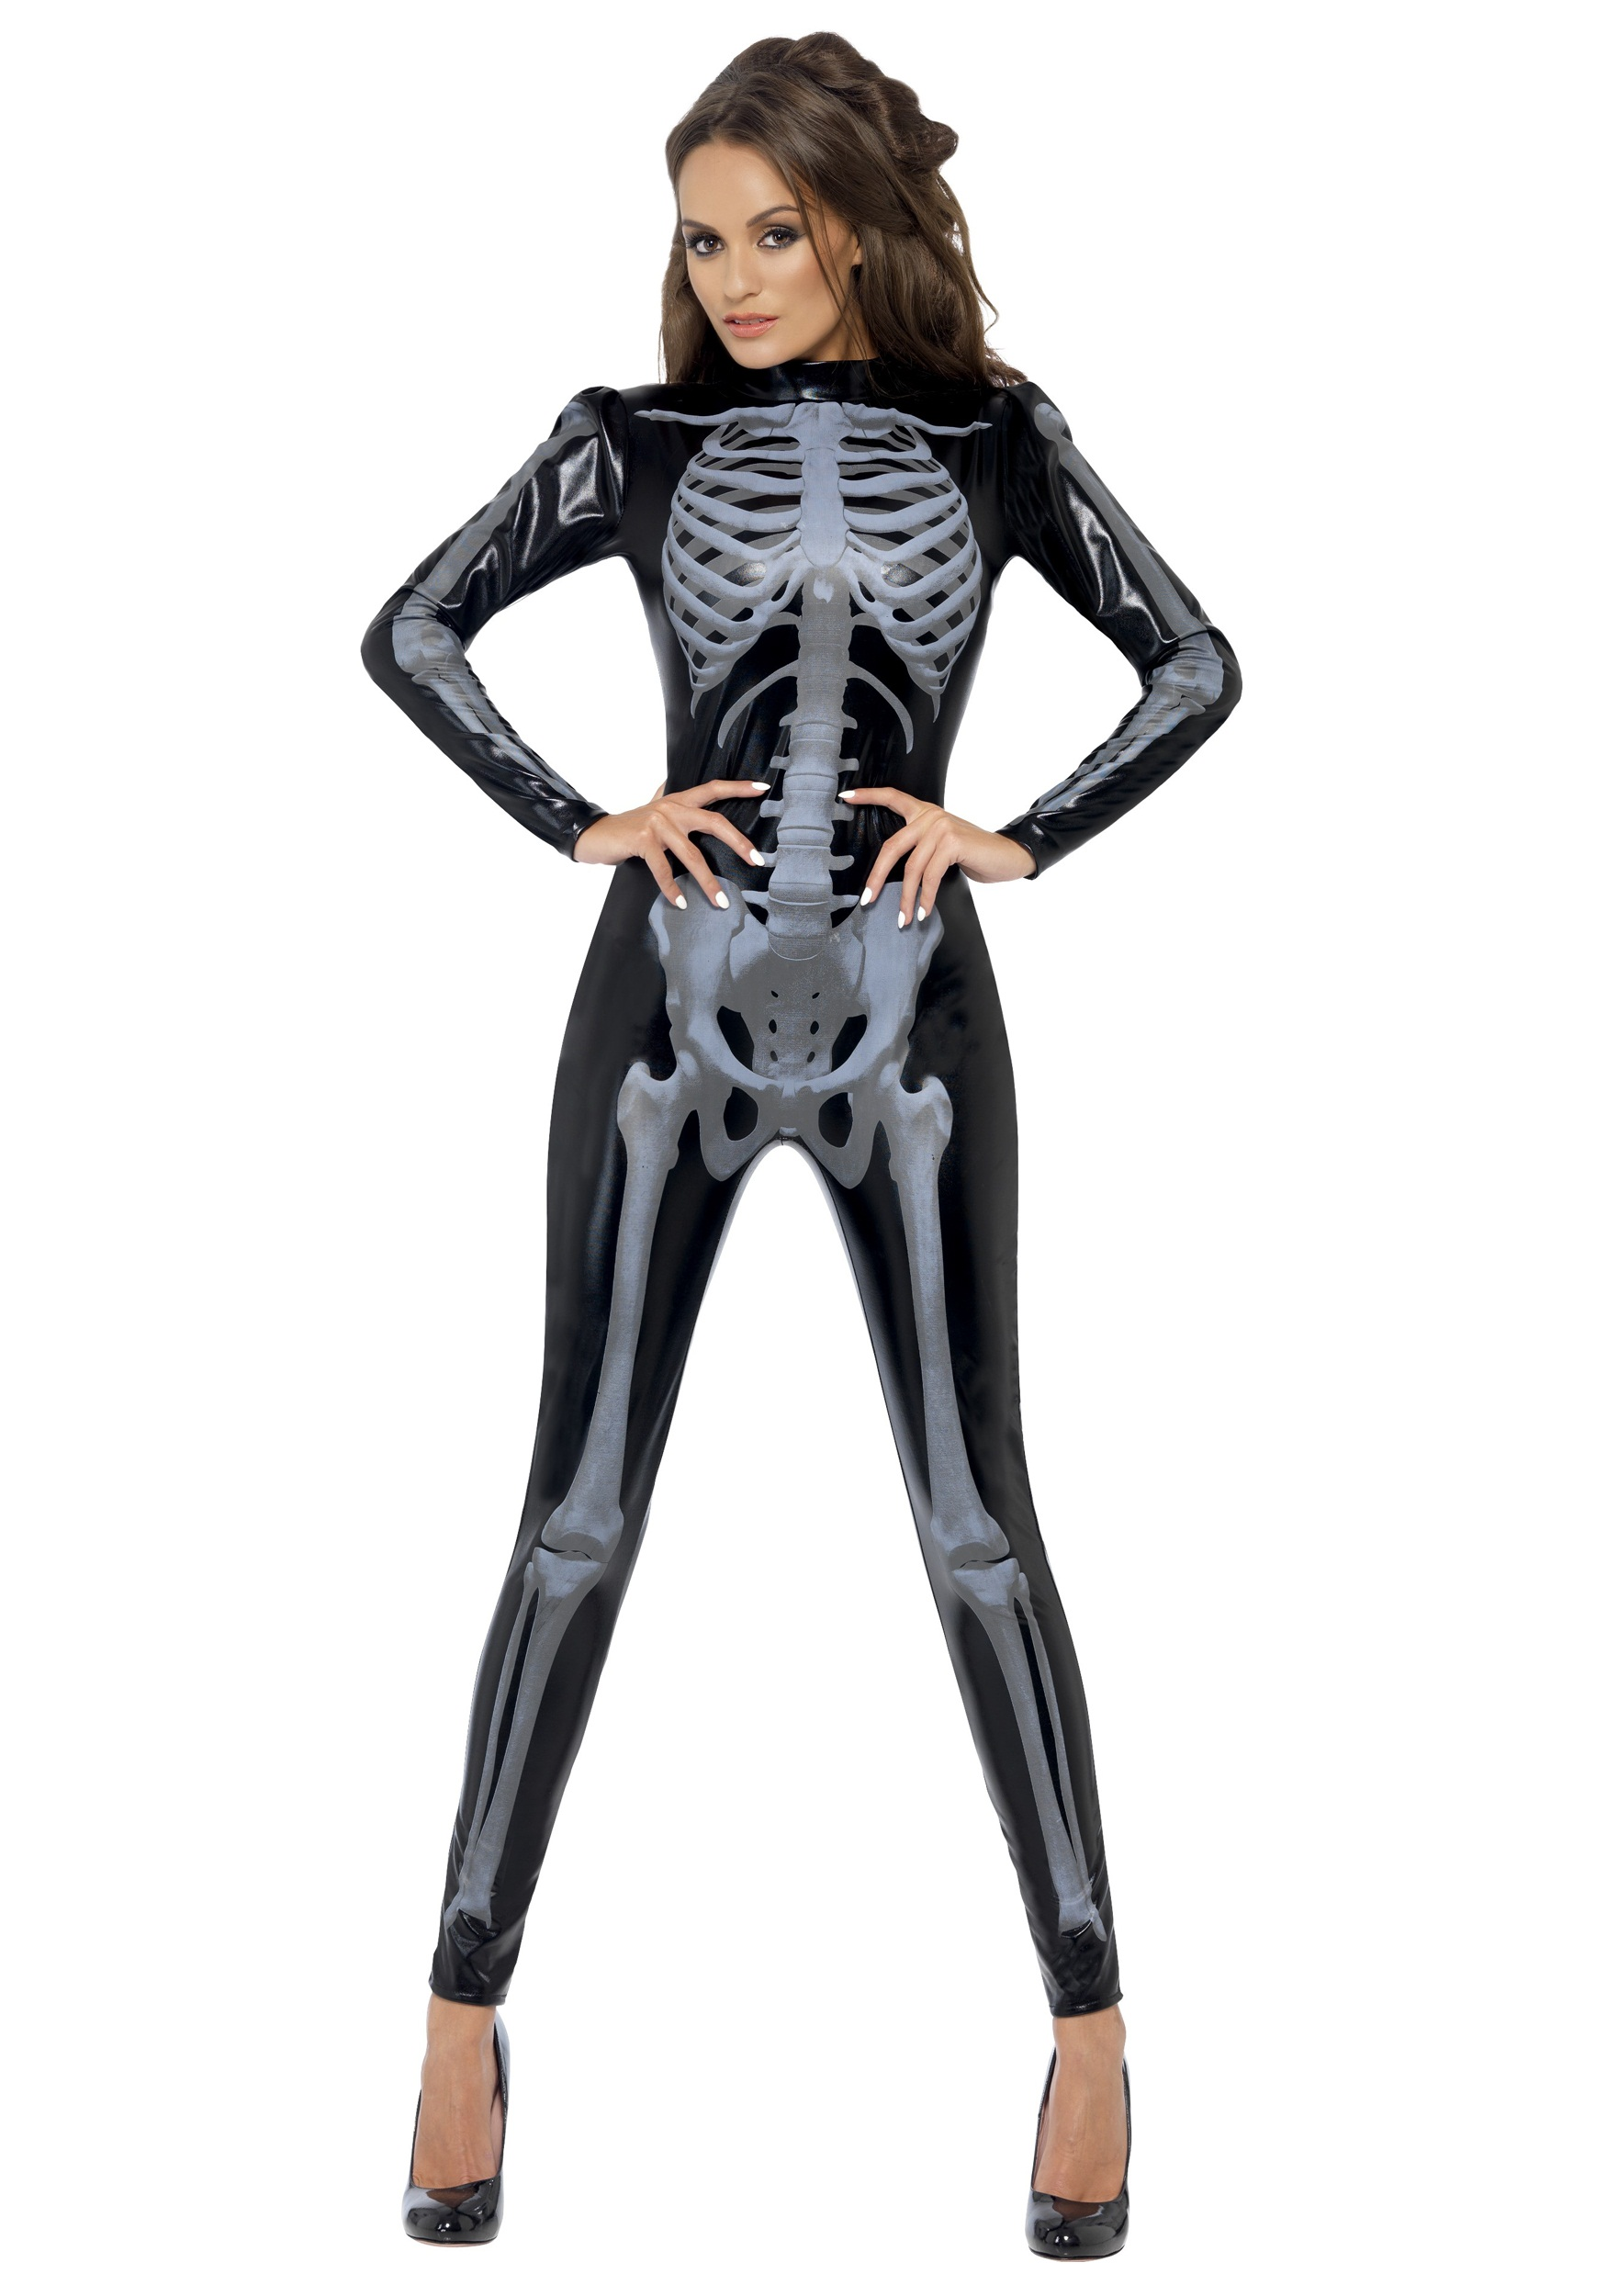 Image result for Skeleton costume